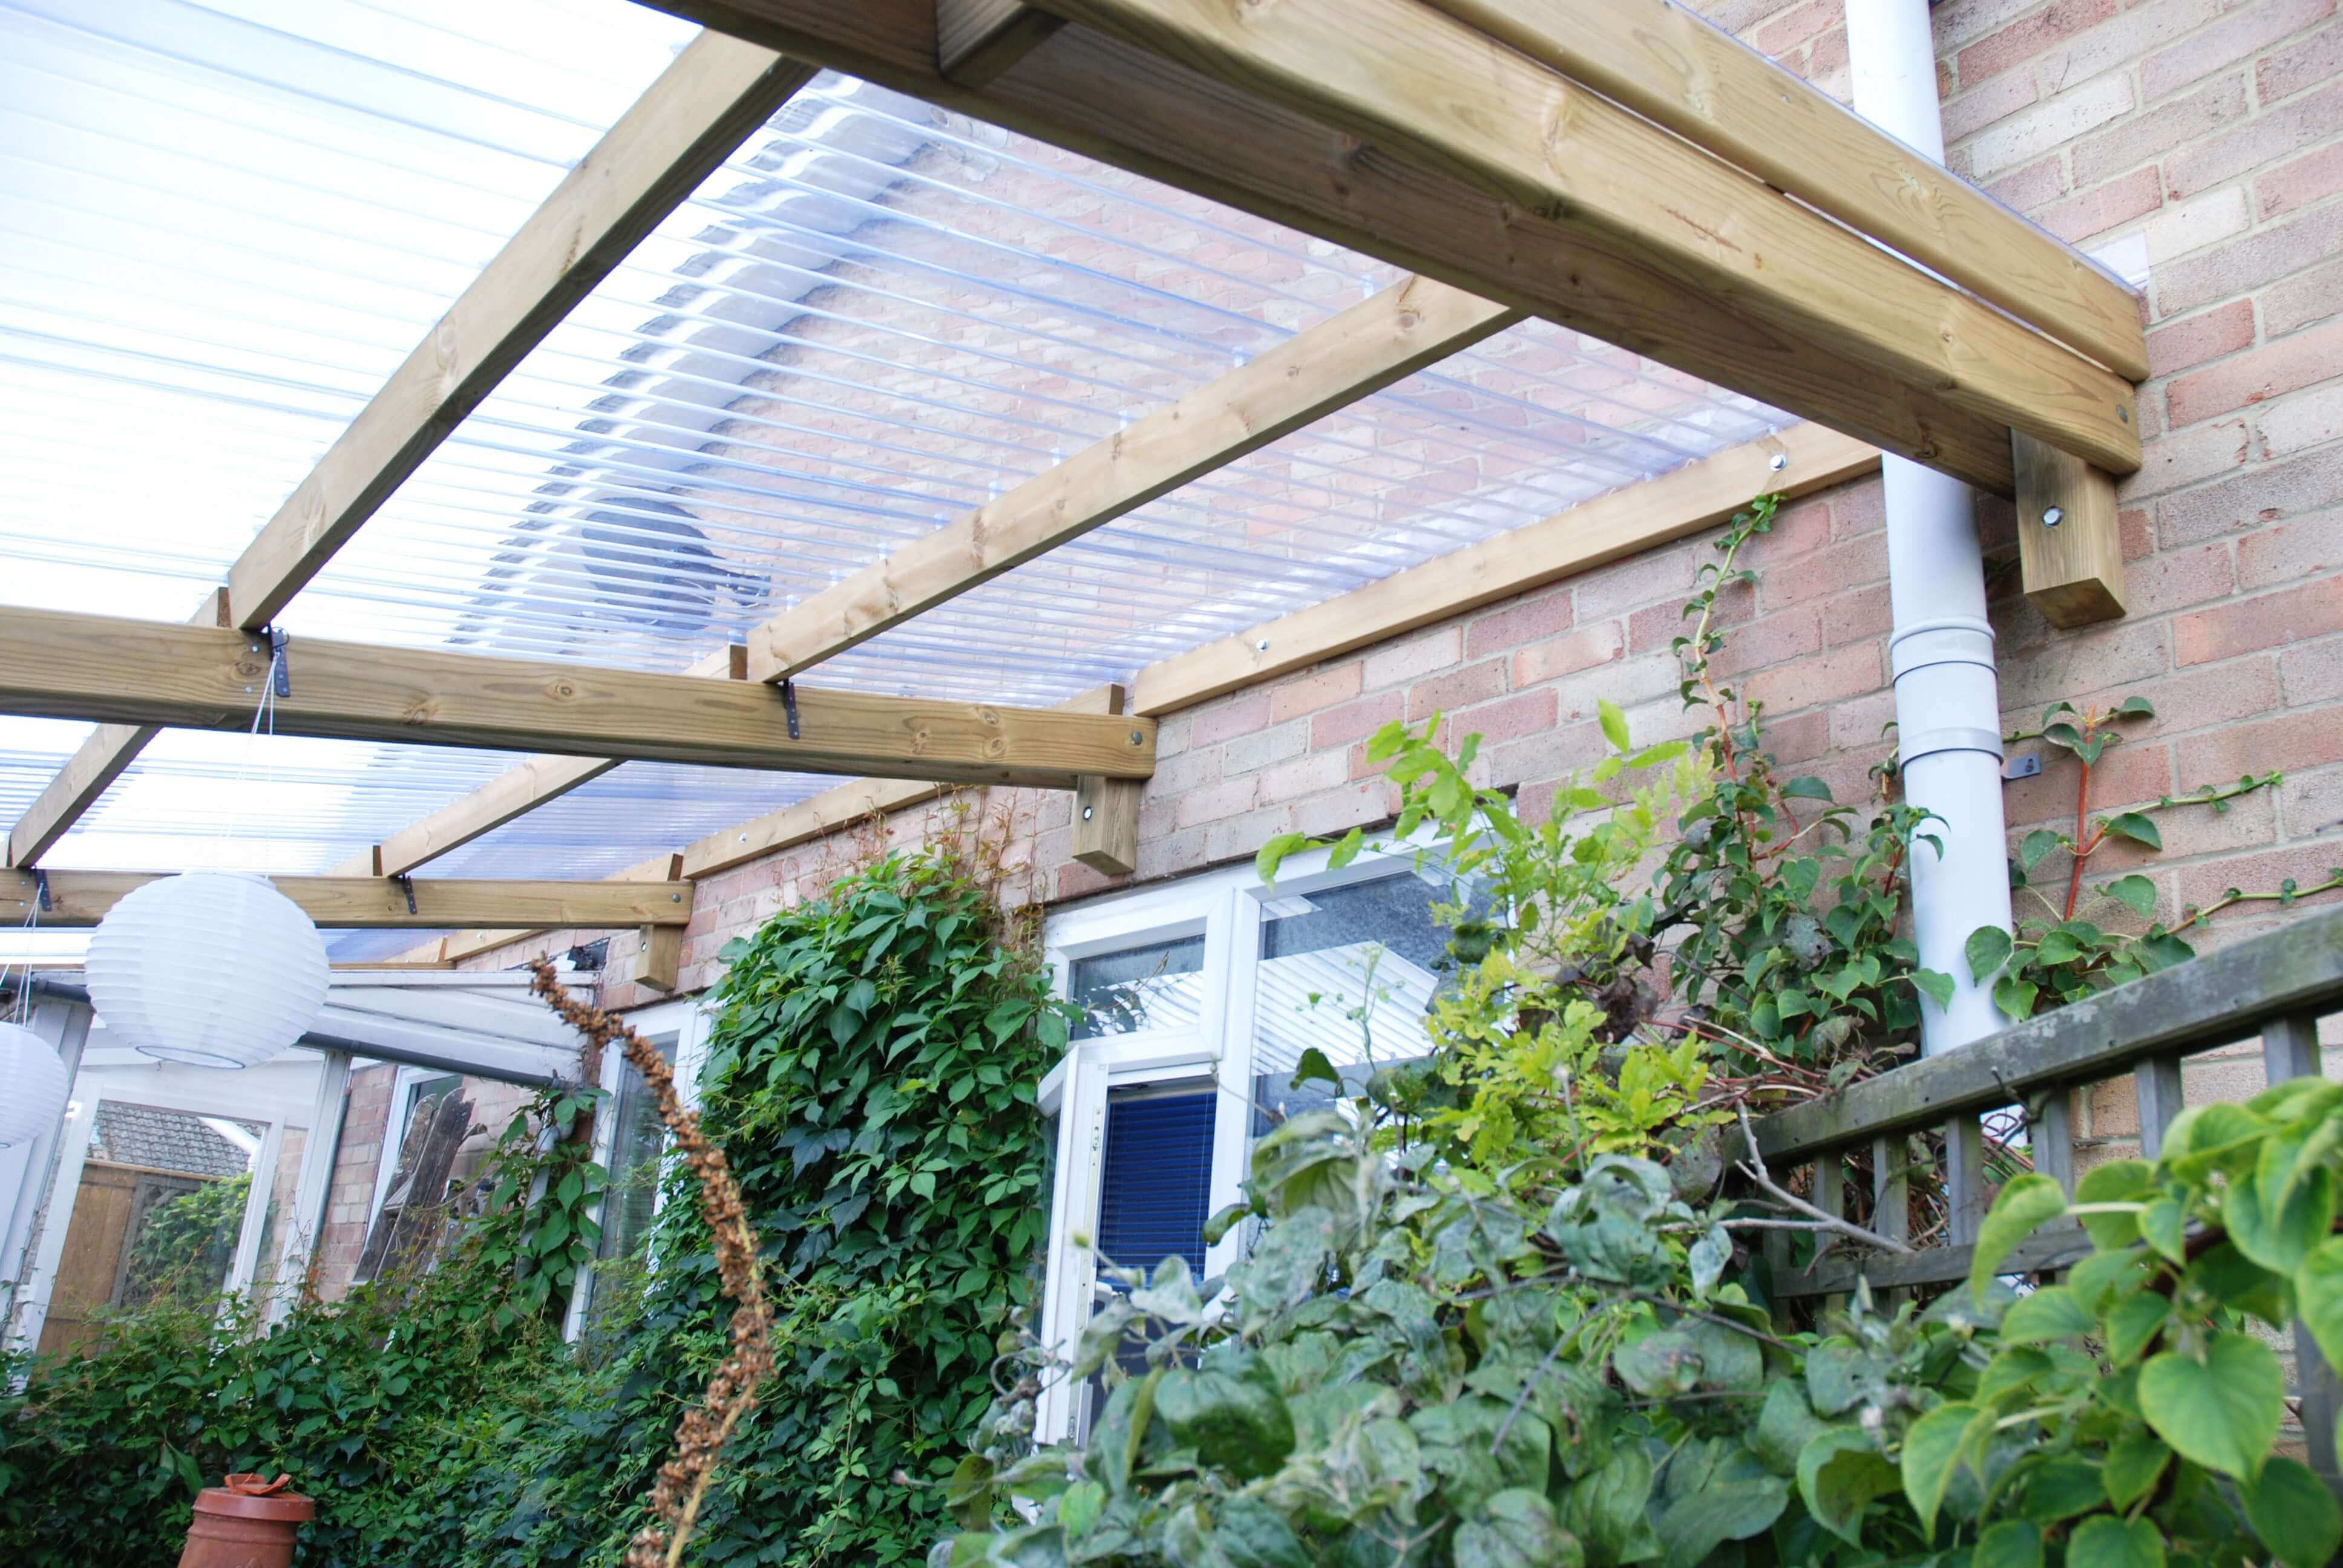 Pergola parts with plastic roof covering